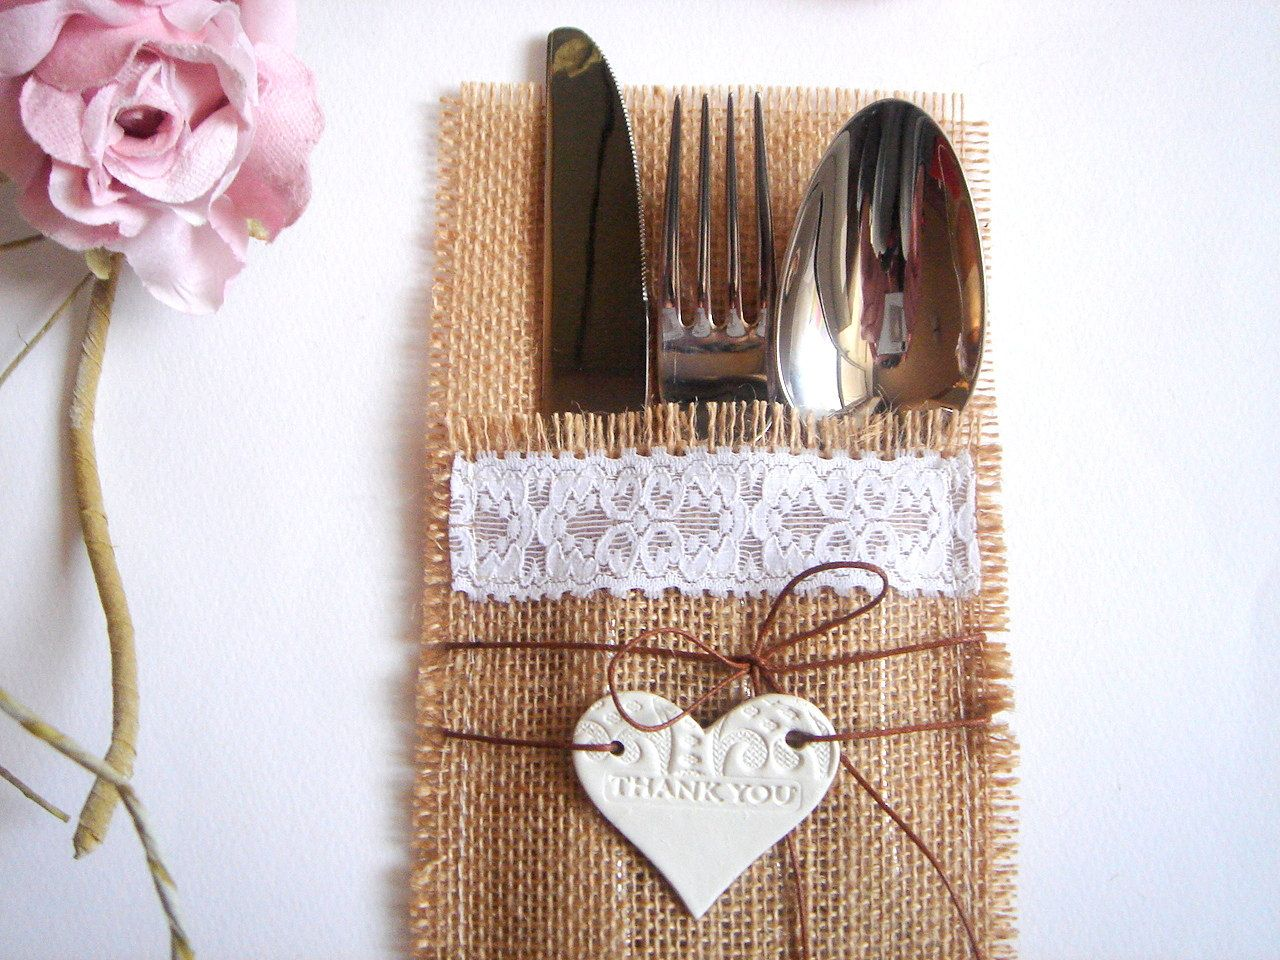 Diy silverwear pocket on your wedding tables for your guests with a